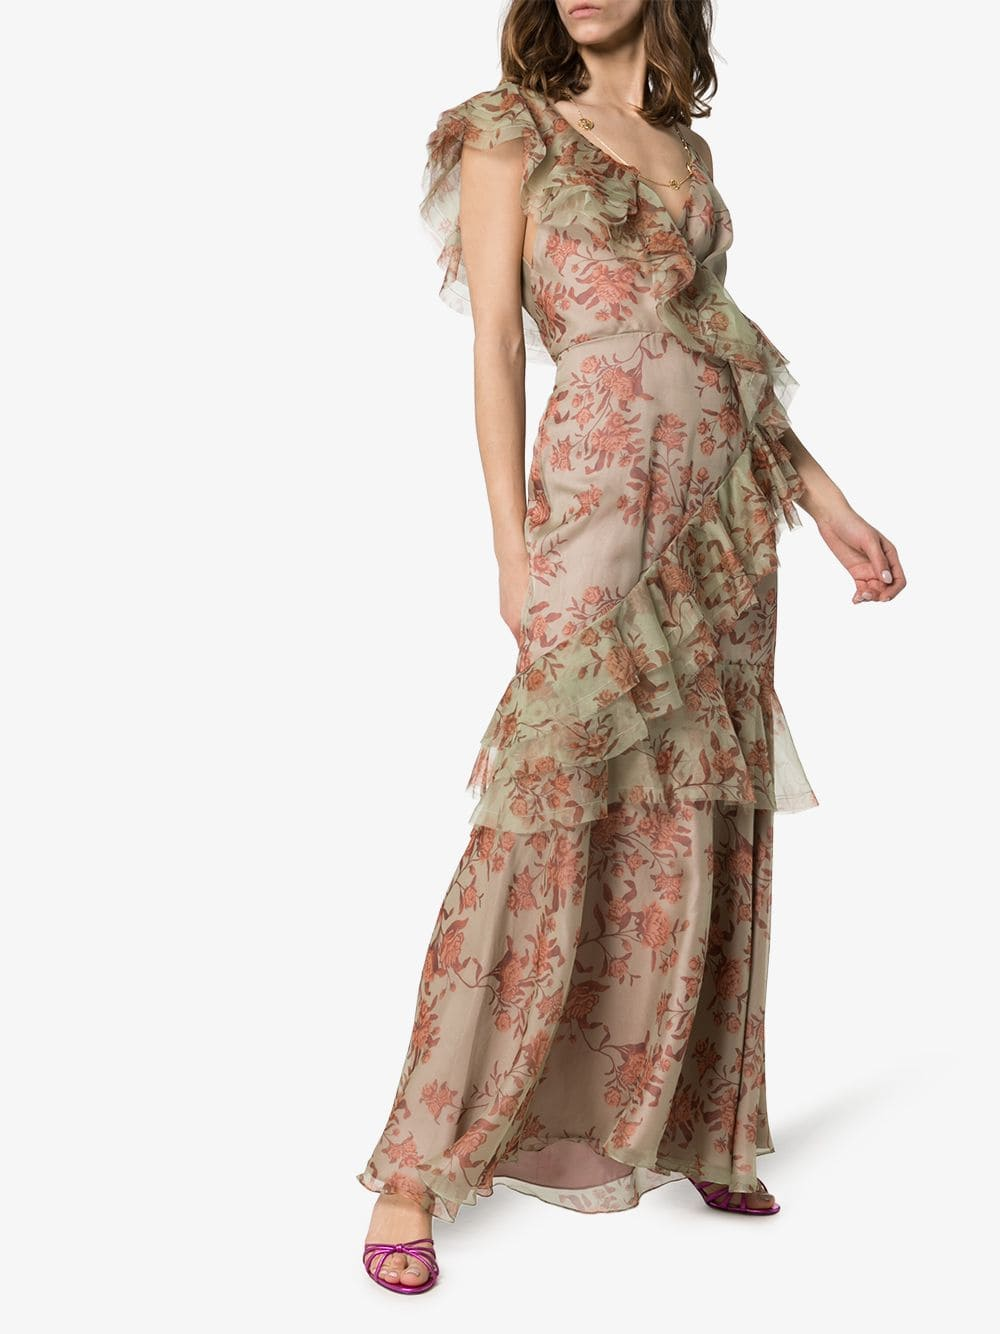 JOHANNA ORTIZ Belle Of The Ball Ruffled Silk Pink / Floral Printed Dress